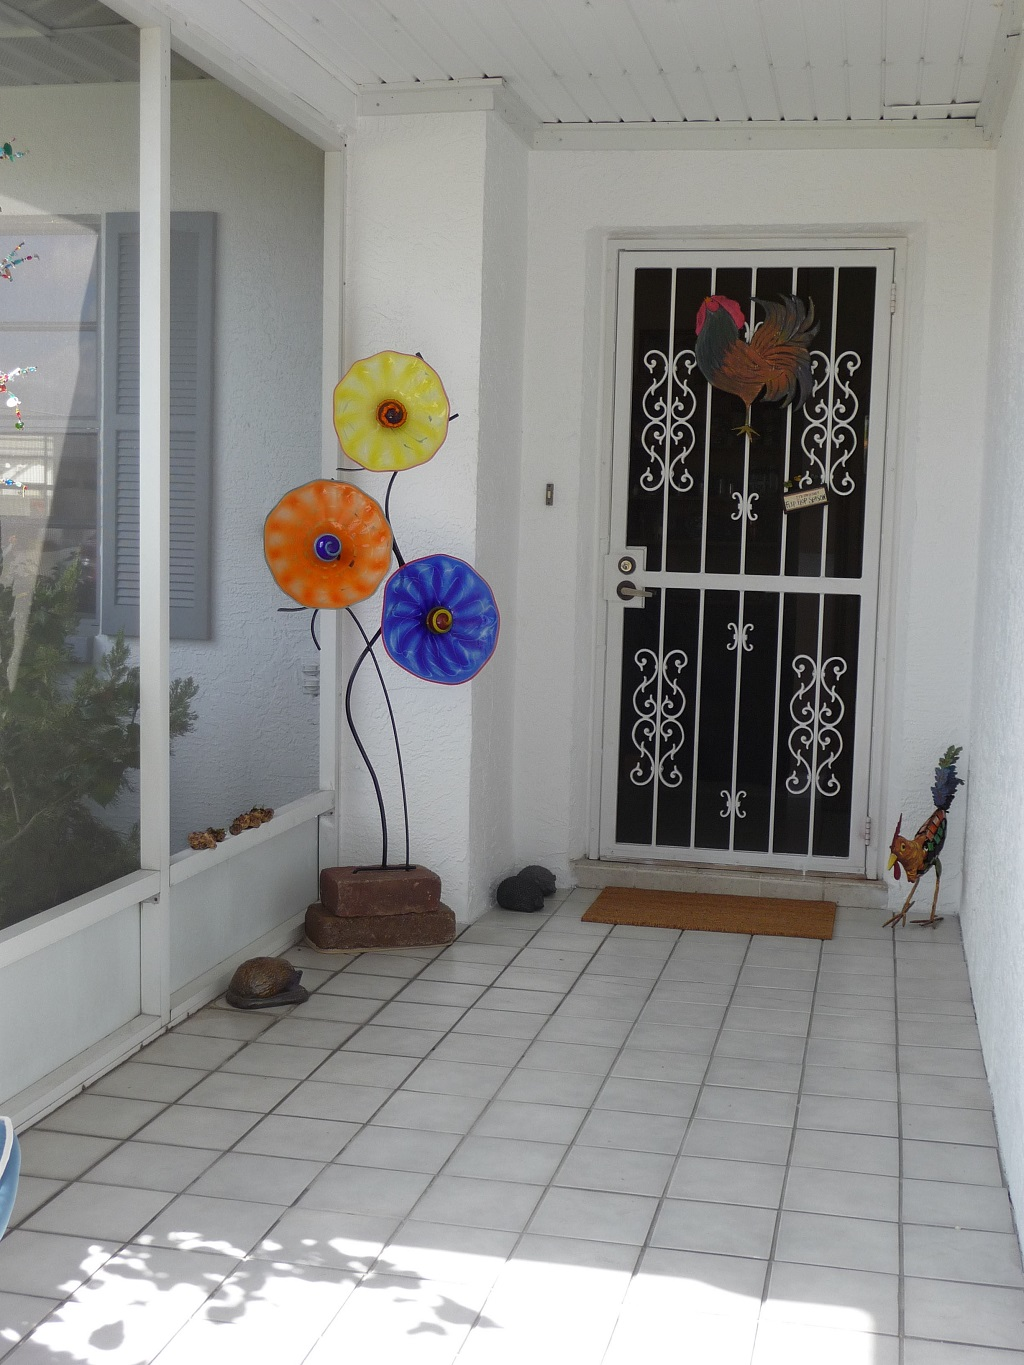 Free standing glass flower sculpture is shown on their porch at the entrance to their home no better way to greet your guests and make them feel welcome. colors shown are cobalt, yellow and orange. This piece is 66″.